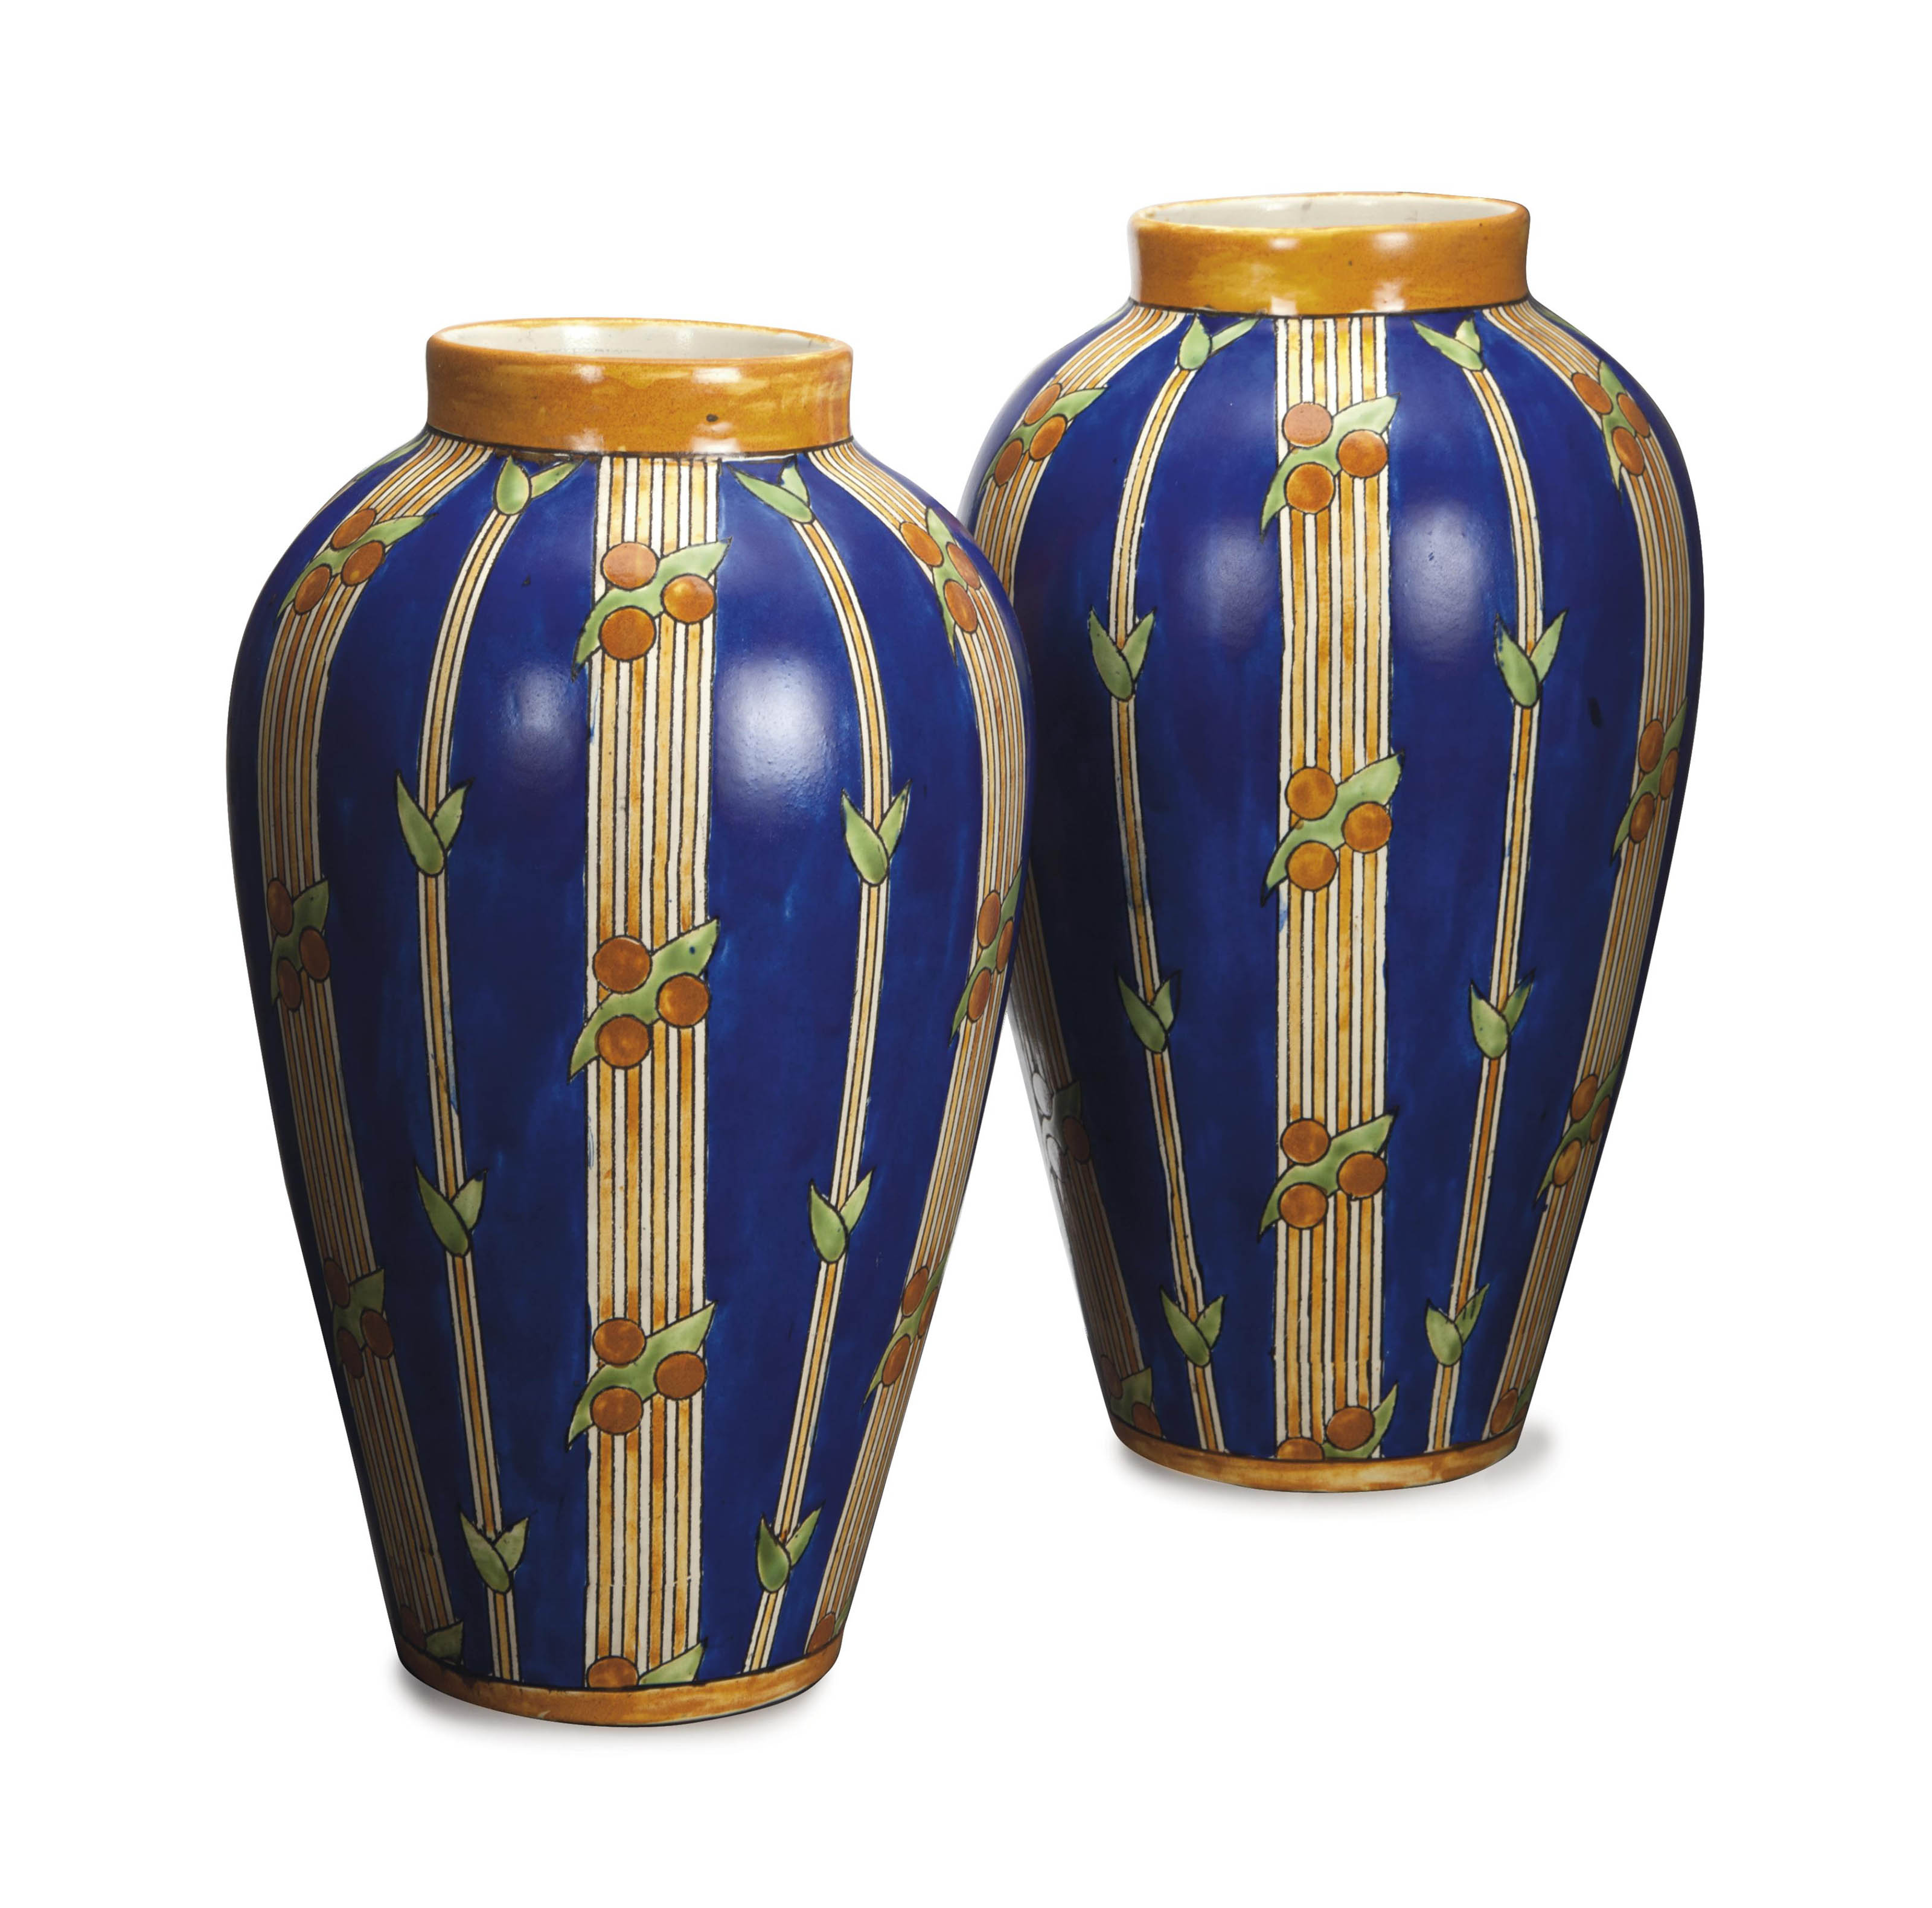 A PAIR OF BELGIAN GLAZED VASES,